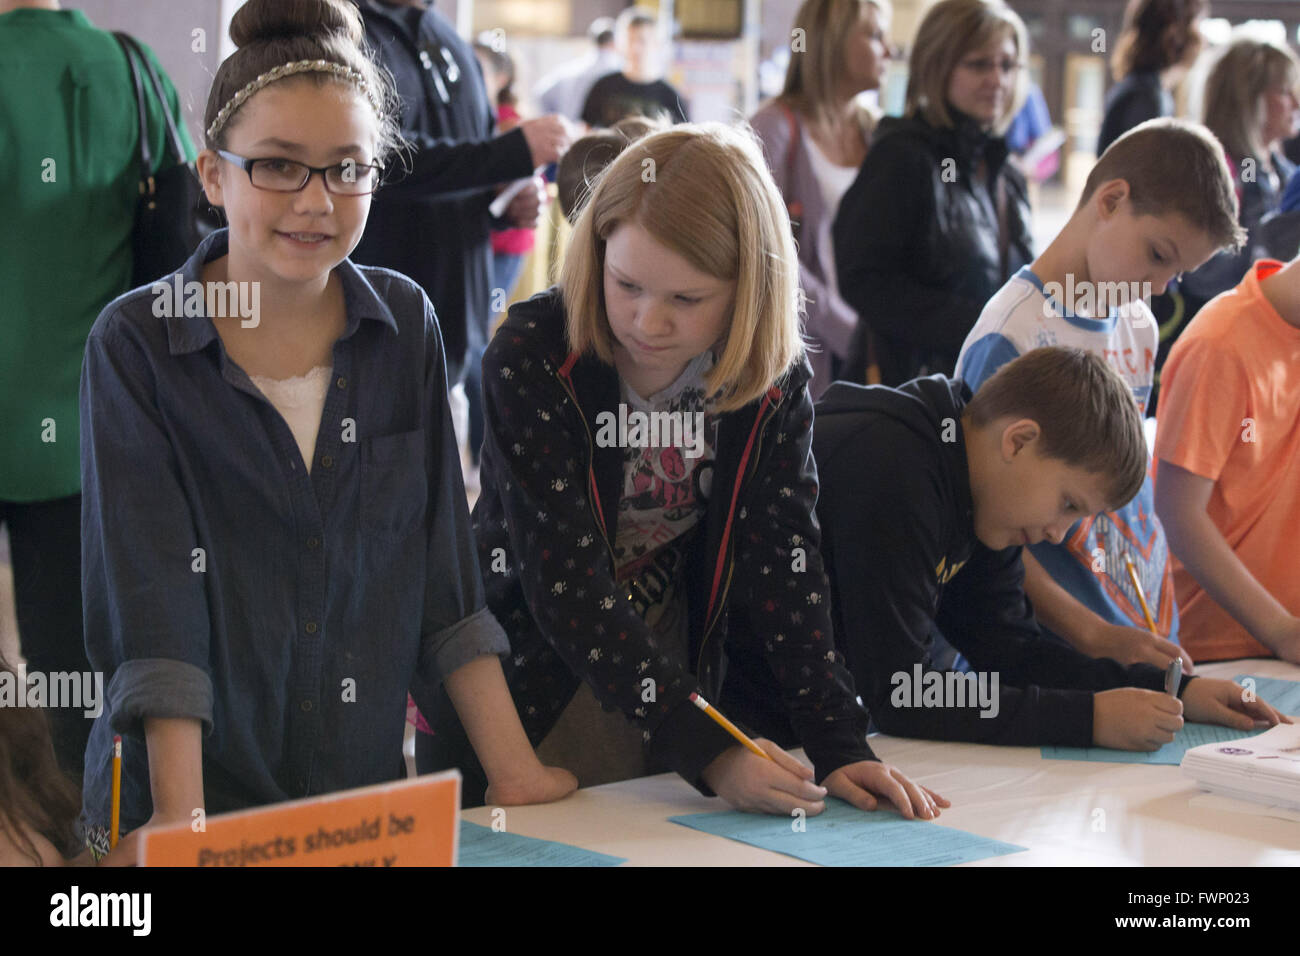 Kansas City, Missouri, USA. 5th Mar, 2016. Madison Avalos (left) and Megan Staggs (right), 5th graders, register Stock Photo